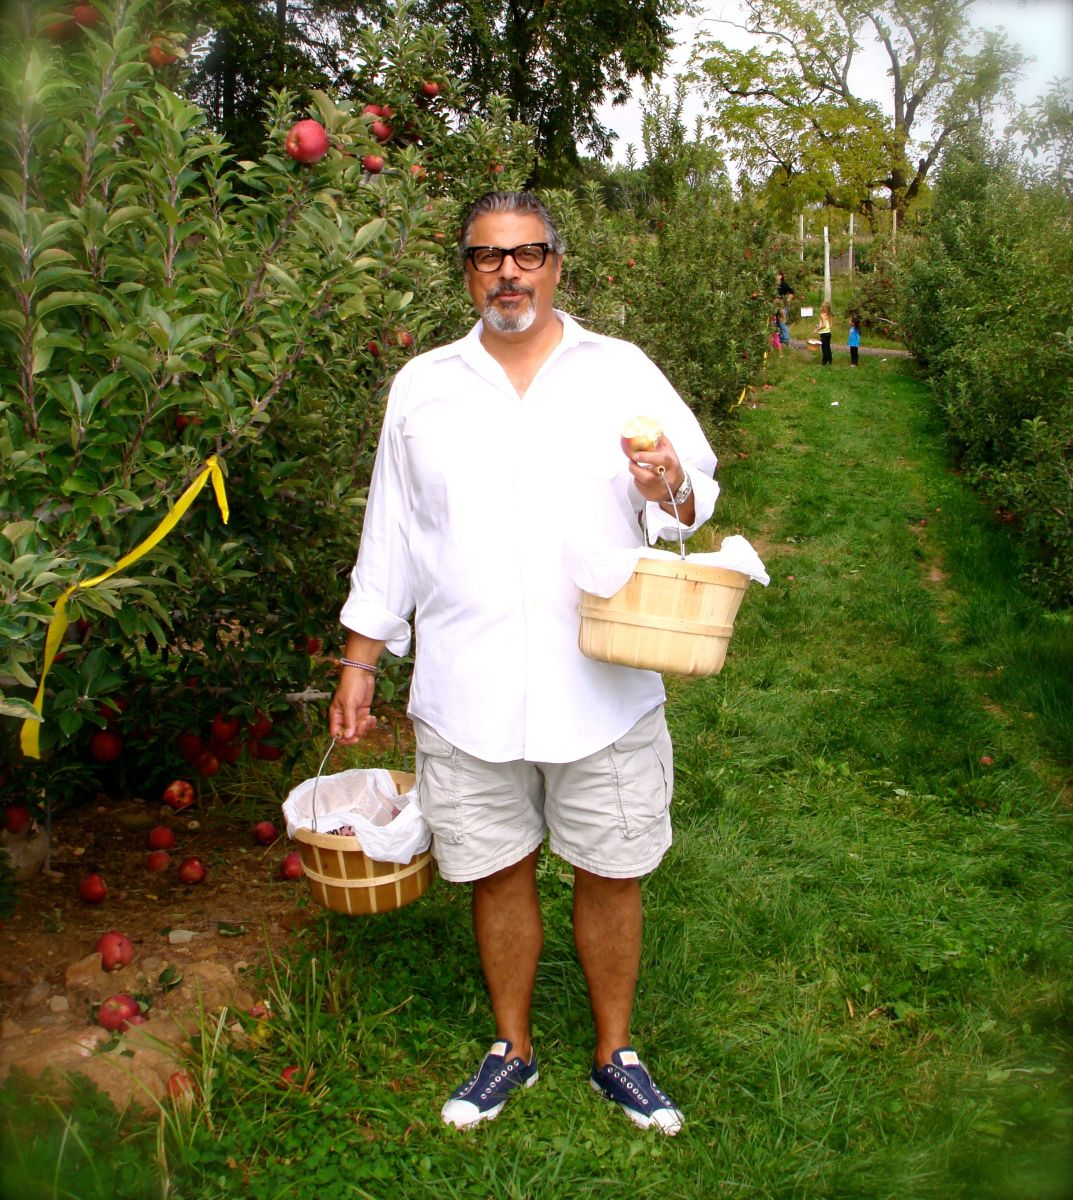 Real men go apple picking